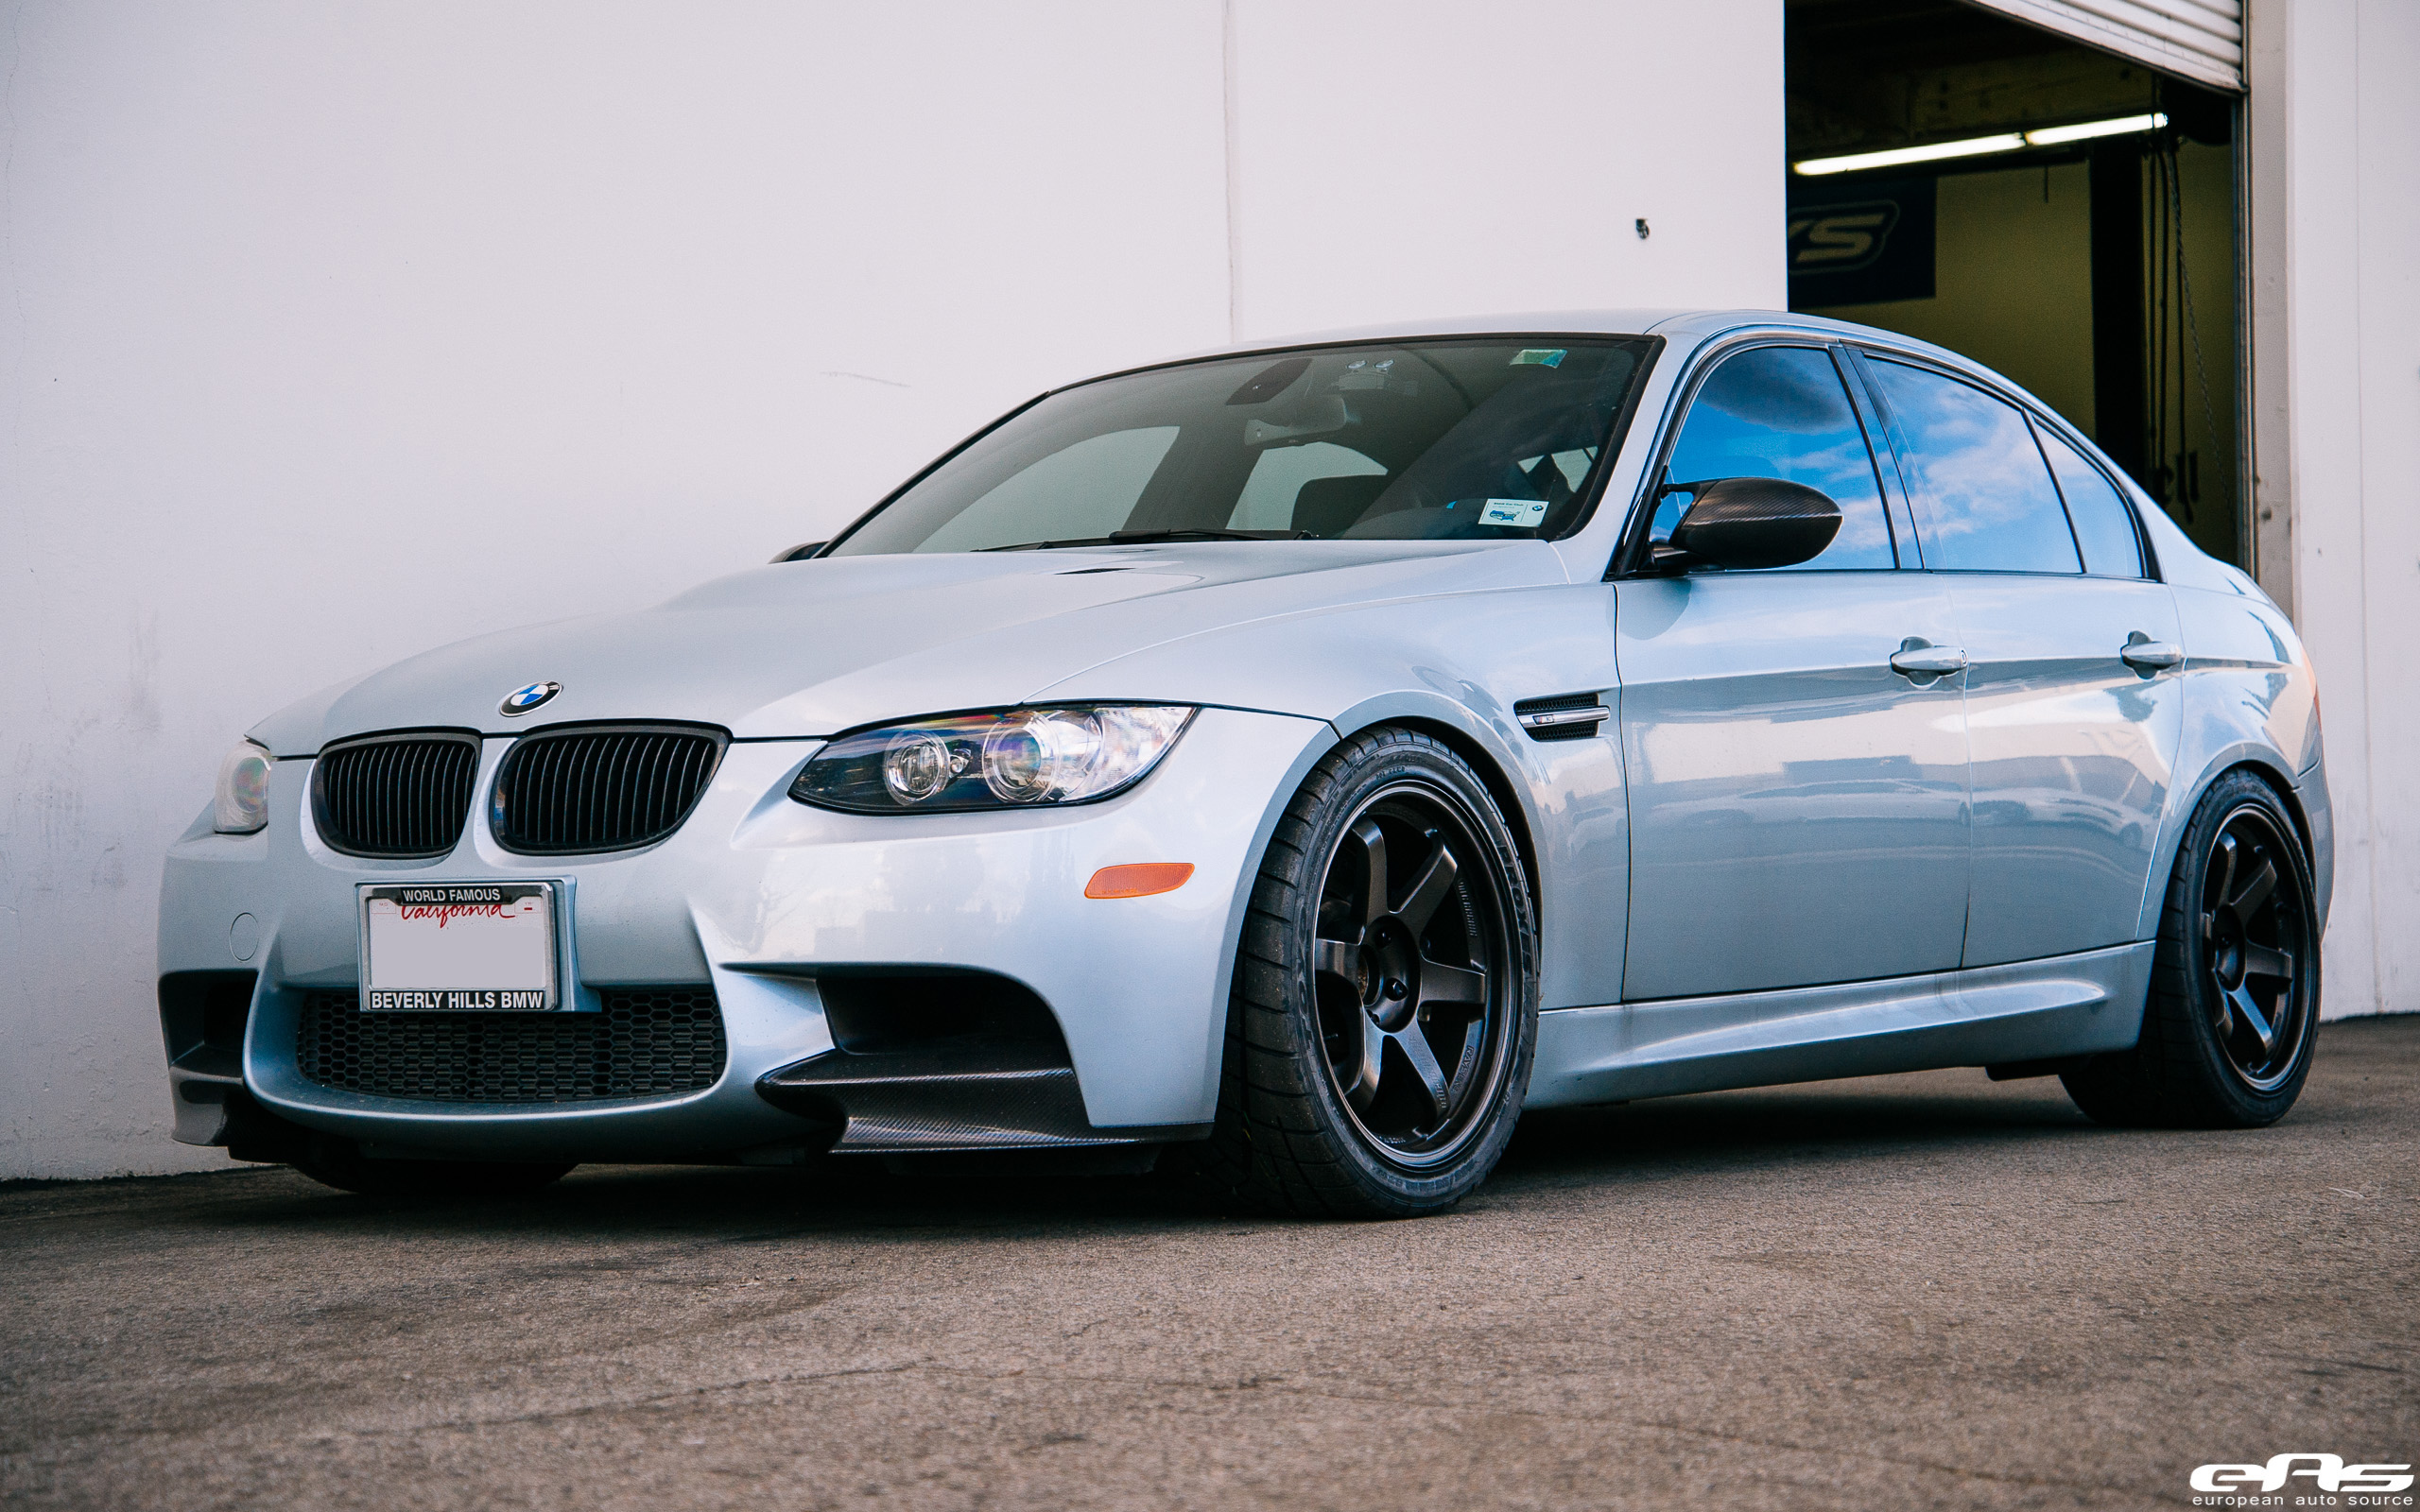 Photoshoot A Jdm Style Bmw E90 M3 Project